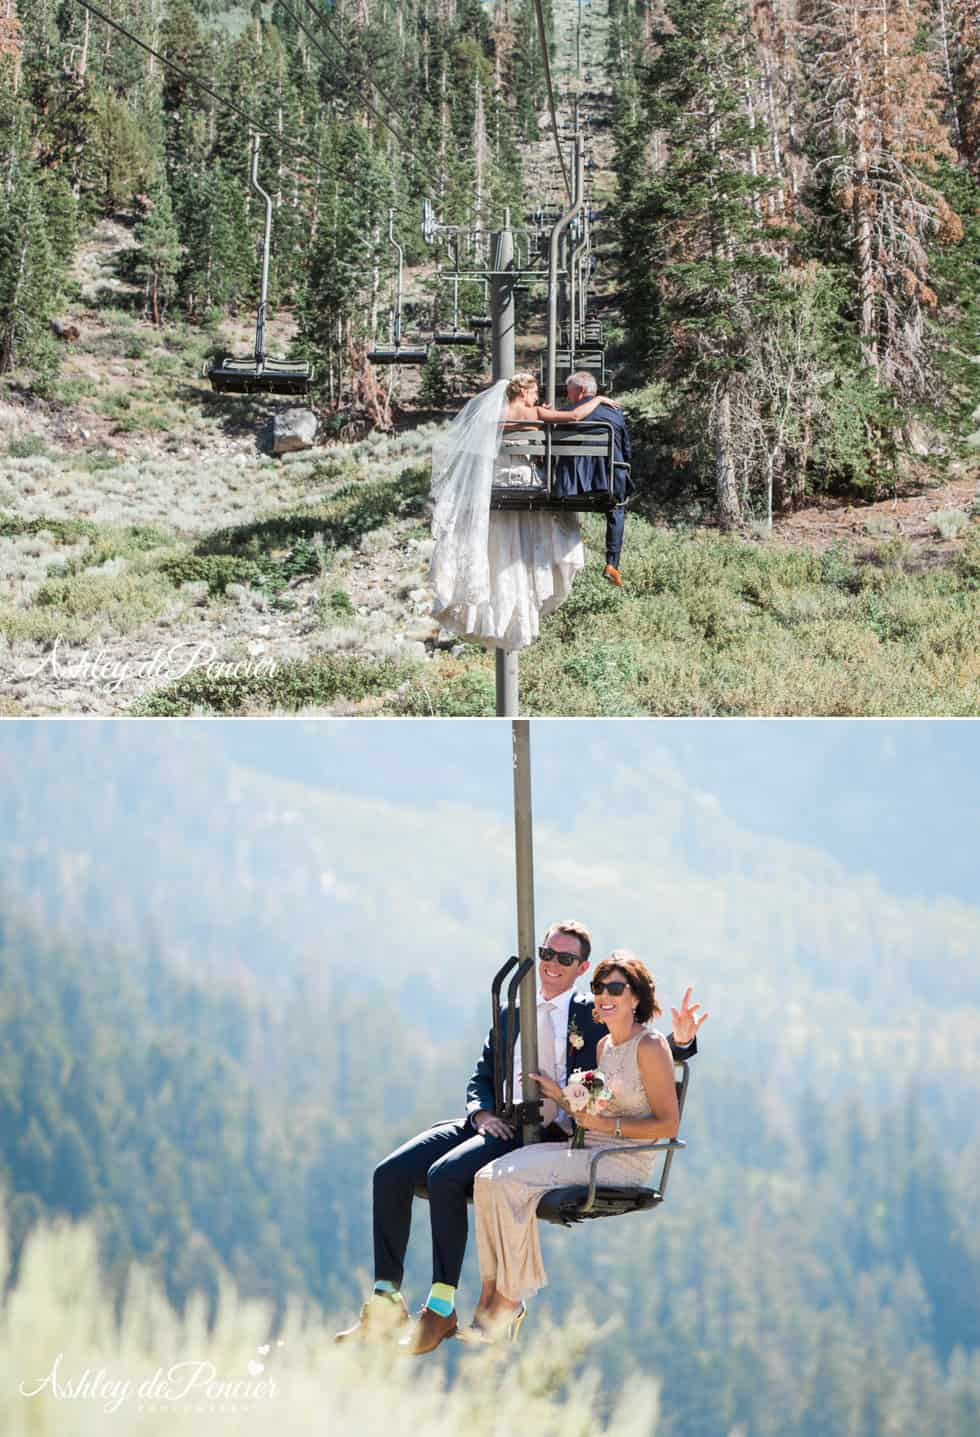 Wedding party riding the ski lift